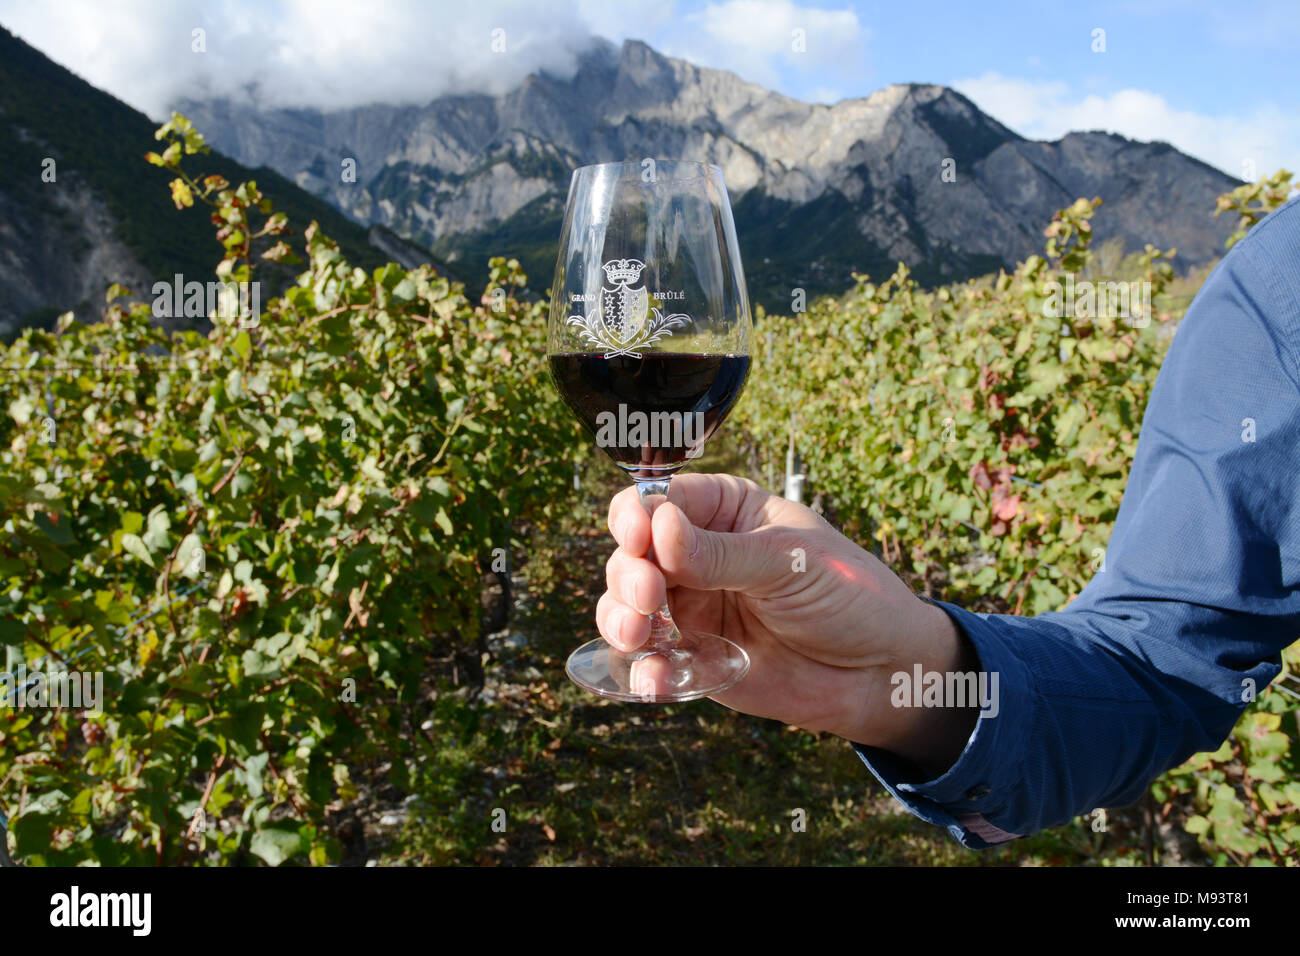 A swiss winemaker in a vineyard near Chamoson holding a glass of Cornalin red wine, made of grapes grown in the Valais region of Switzerland. - Stock Image